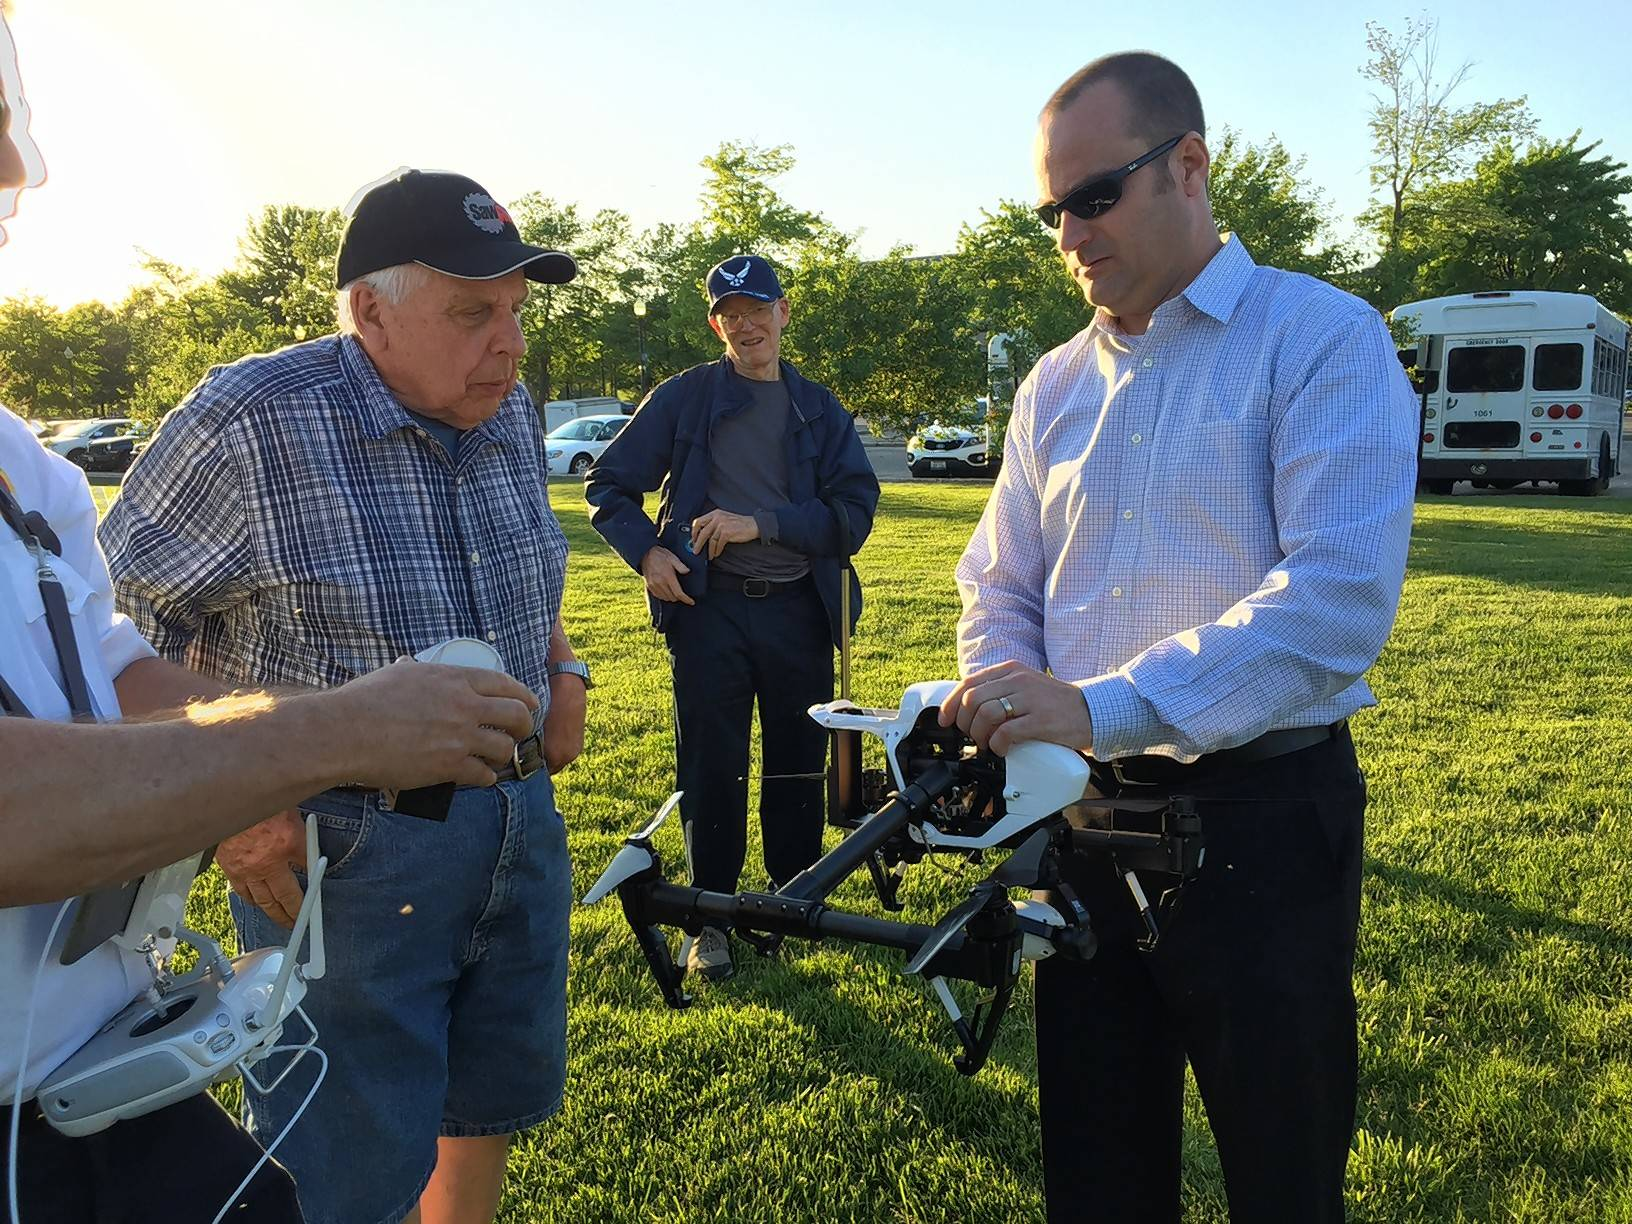 Elgin fire, police demonstrate new drones